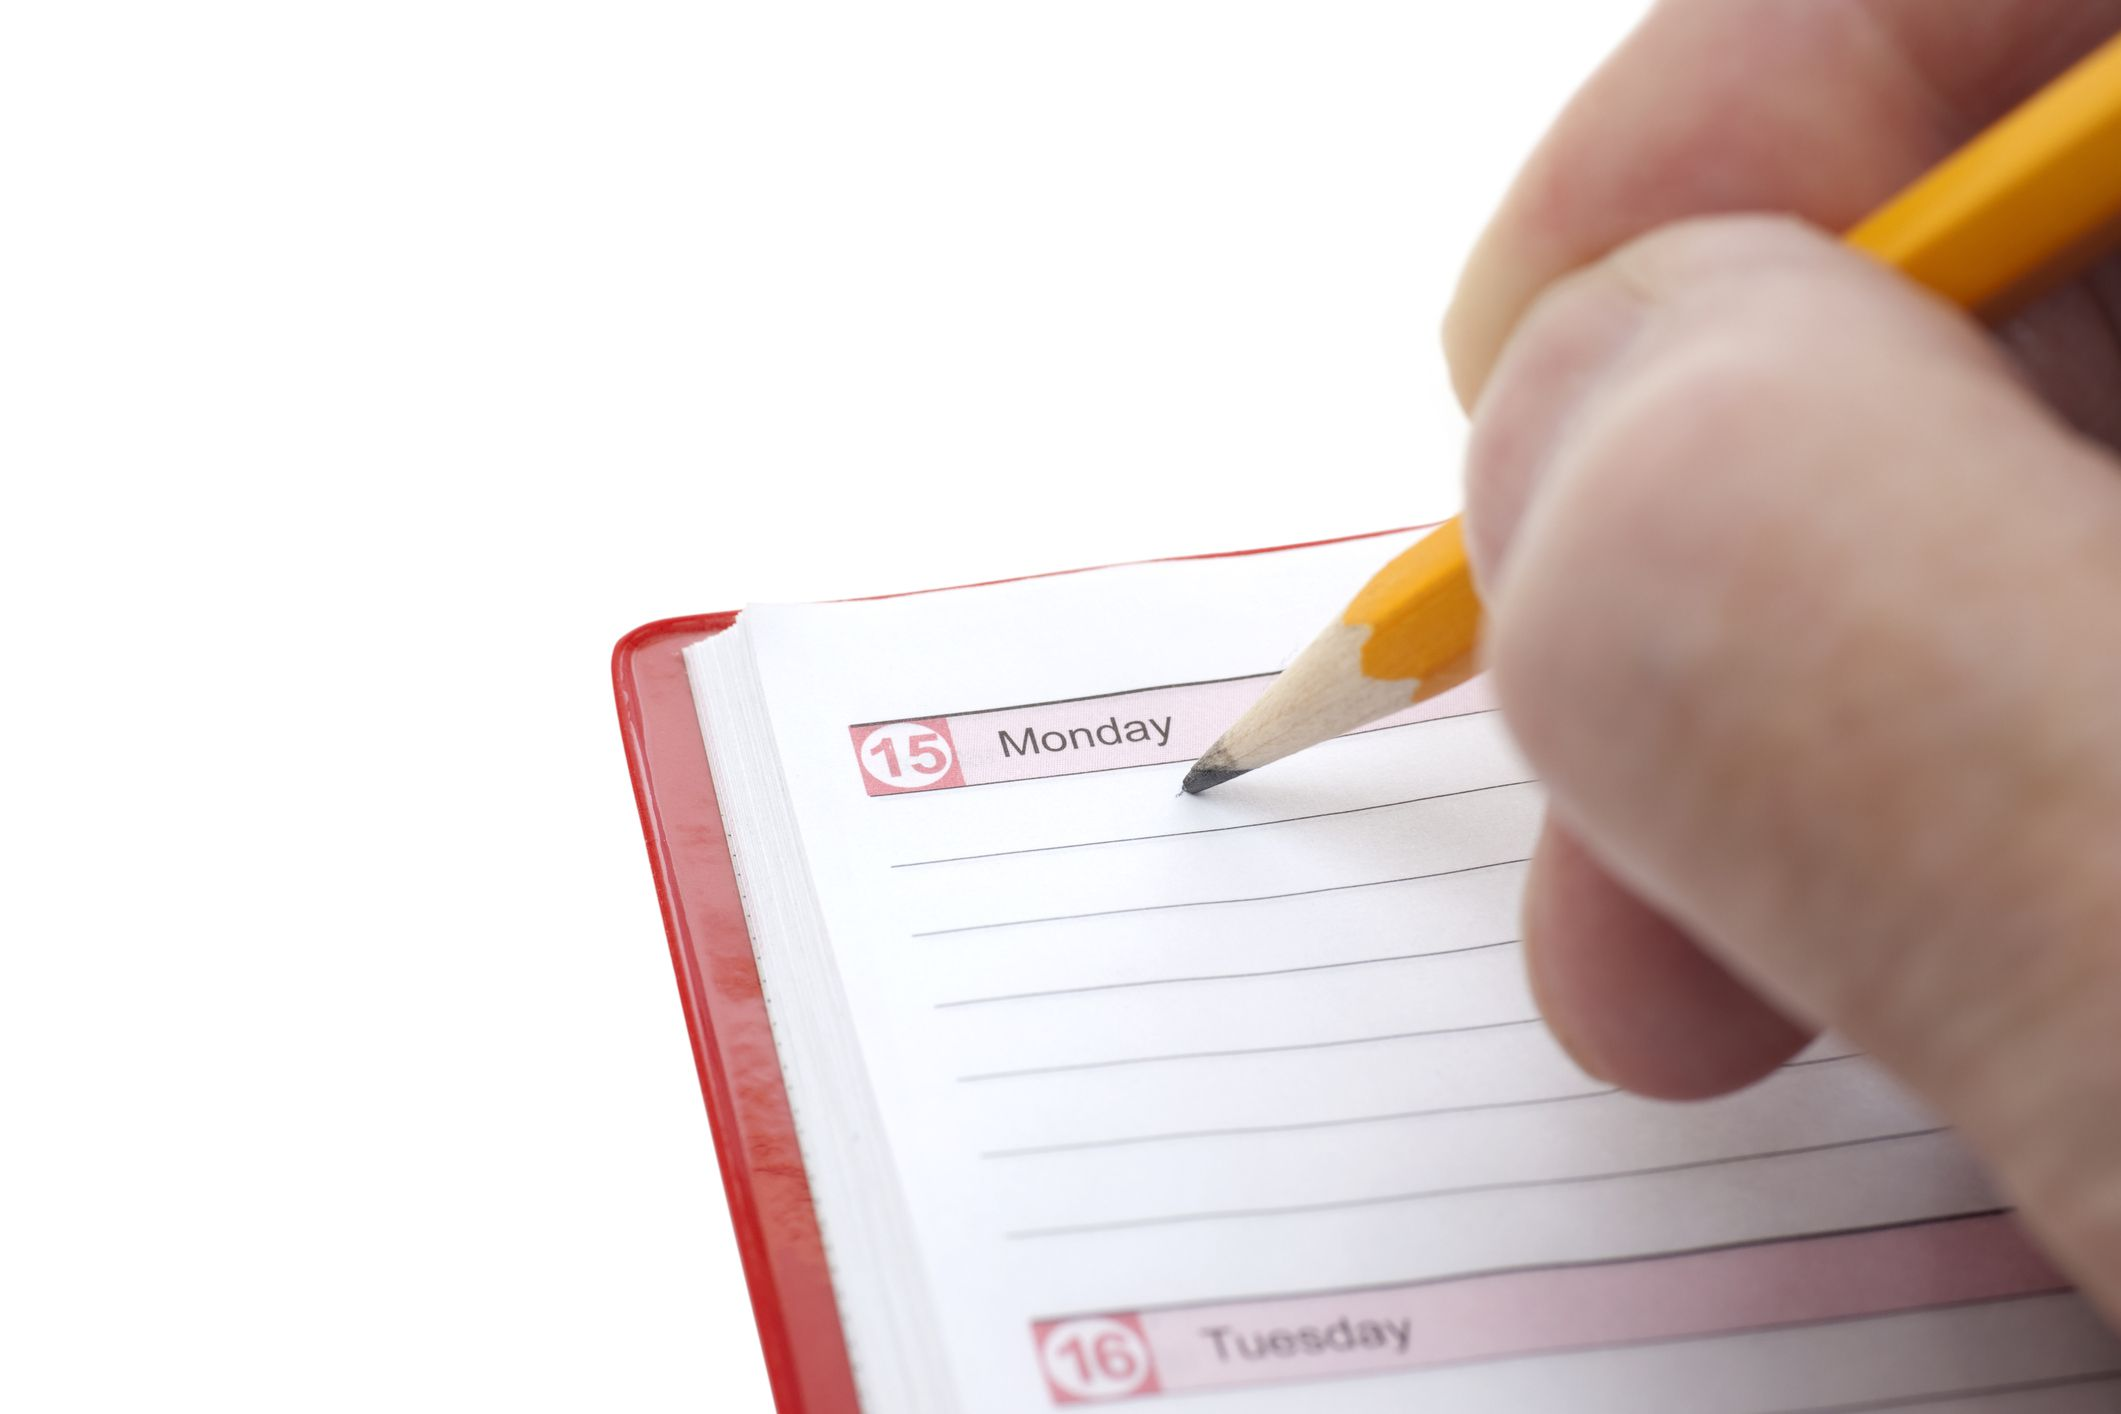 Person getting ready to write in a weekly planner